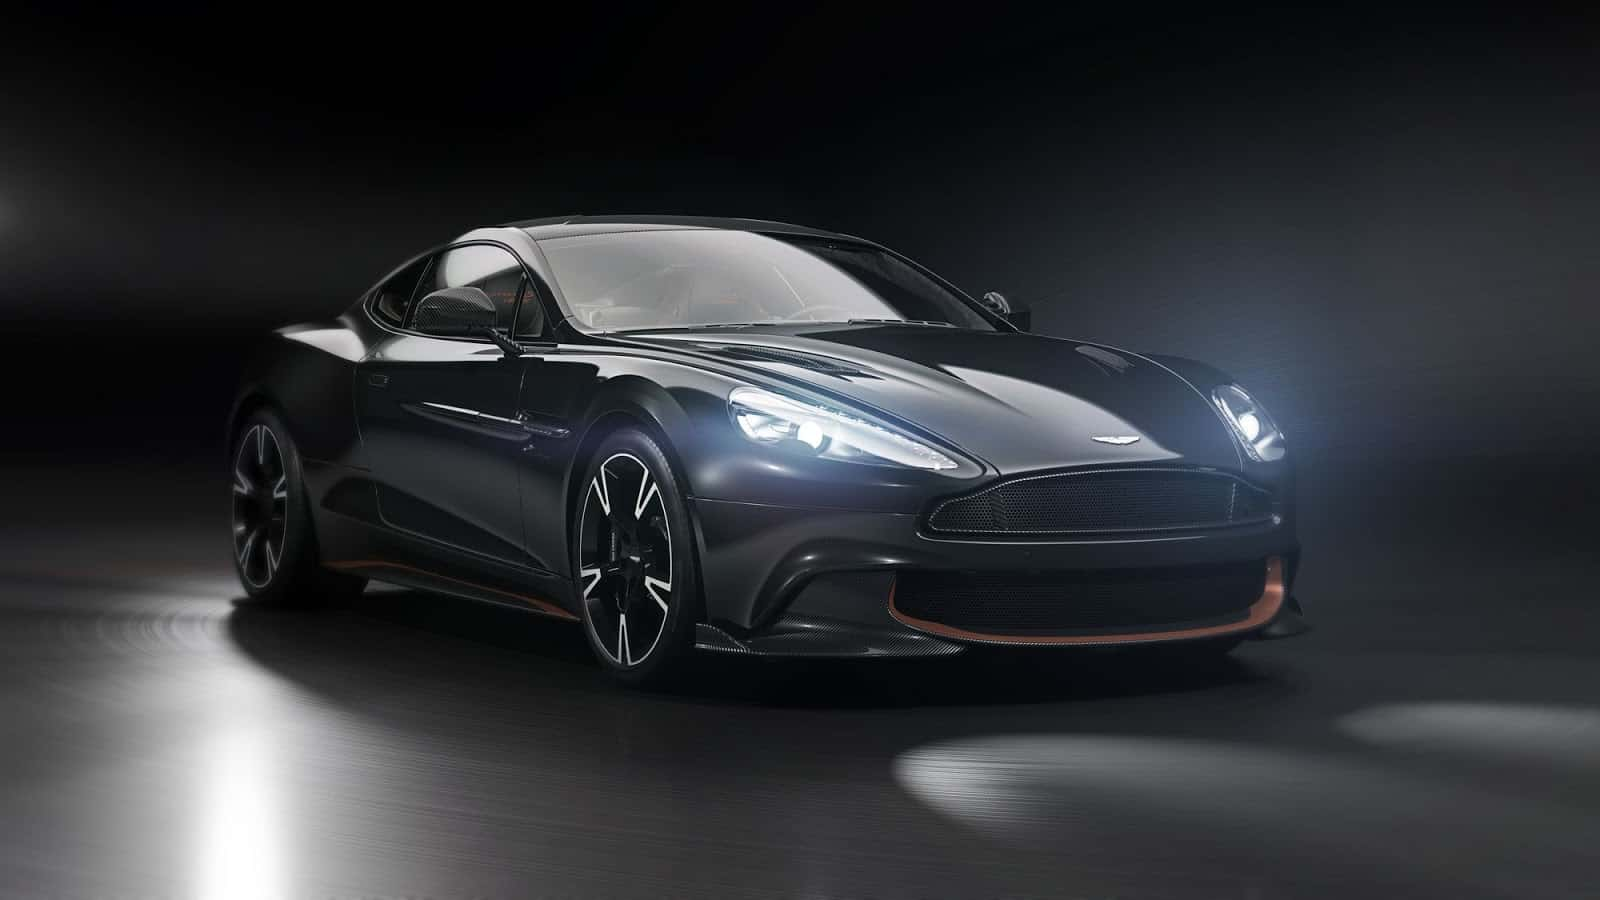 Farewell To a Masterpiece: Aston Martin Vanquish S Ultimate